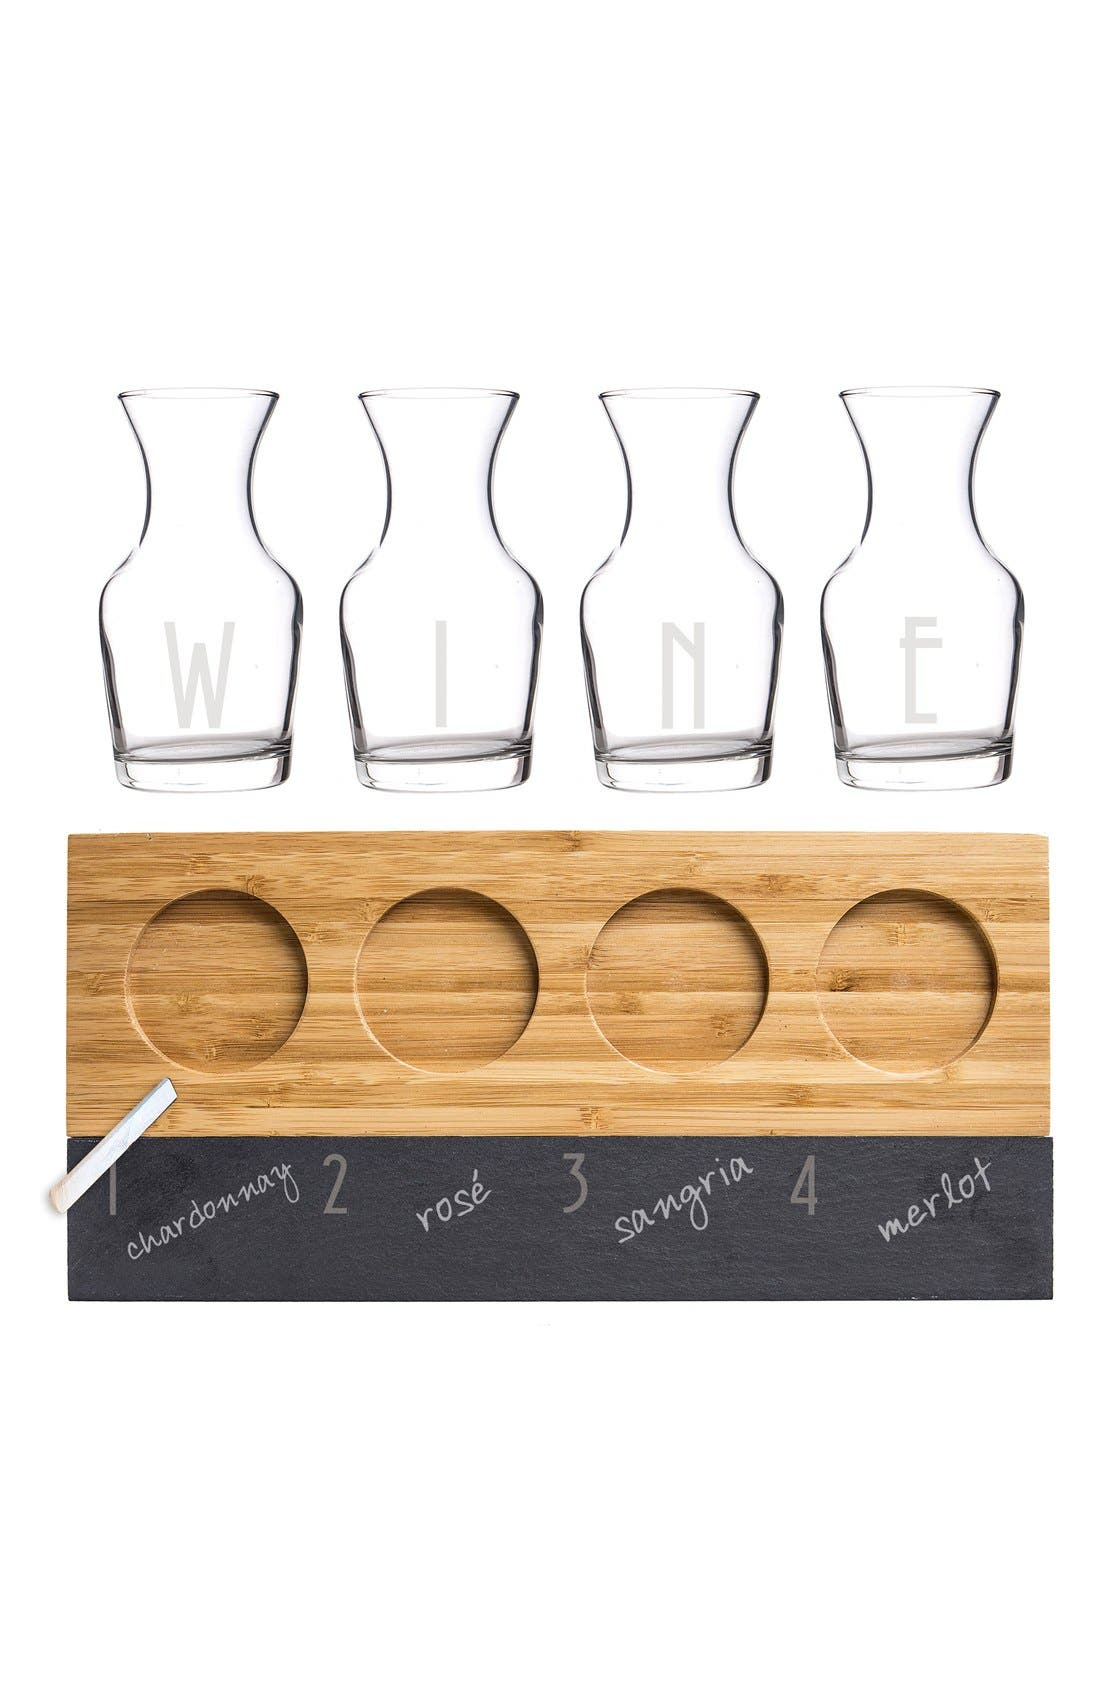 5-Piece Wine Tasting Flight,                             Main thumbnail 1, color,                             200